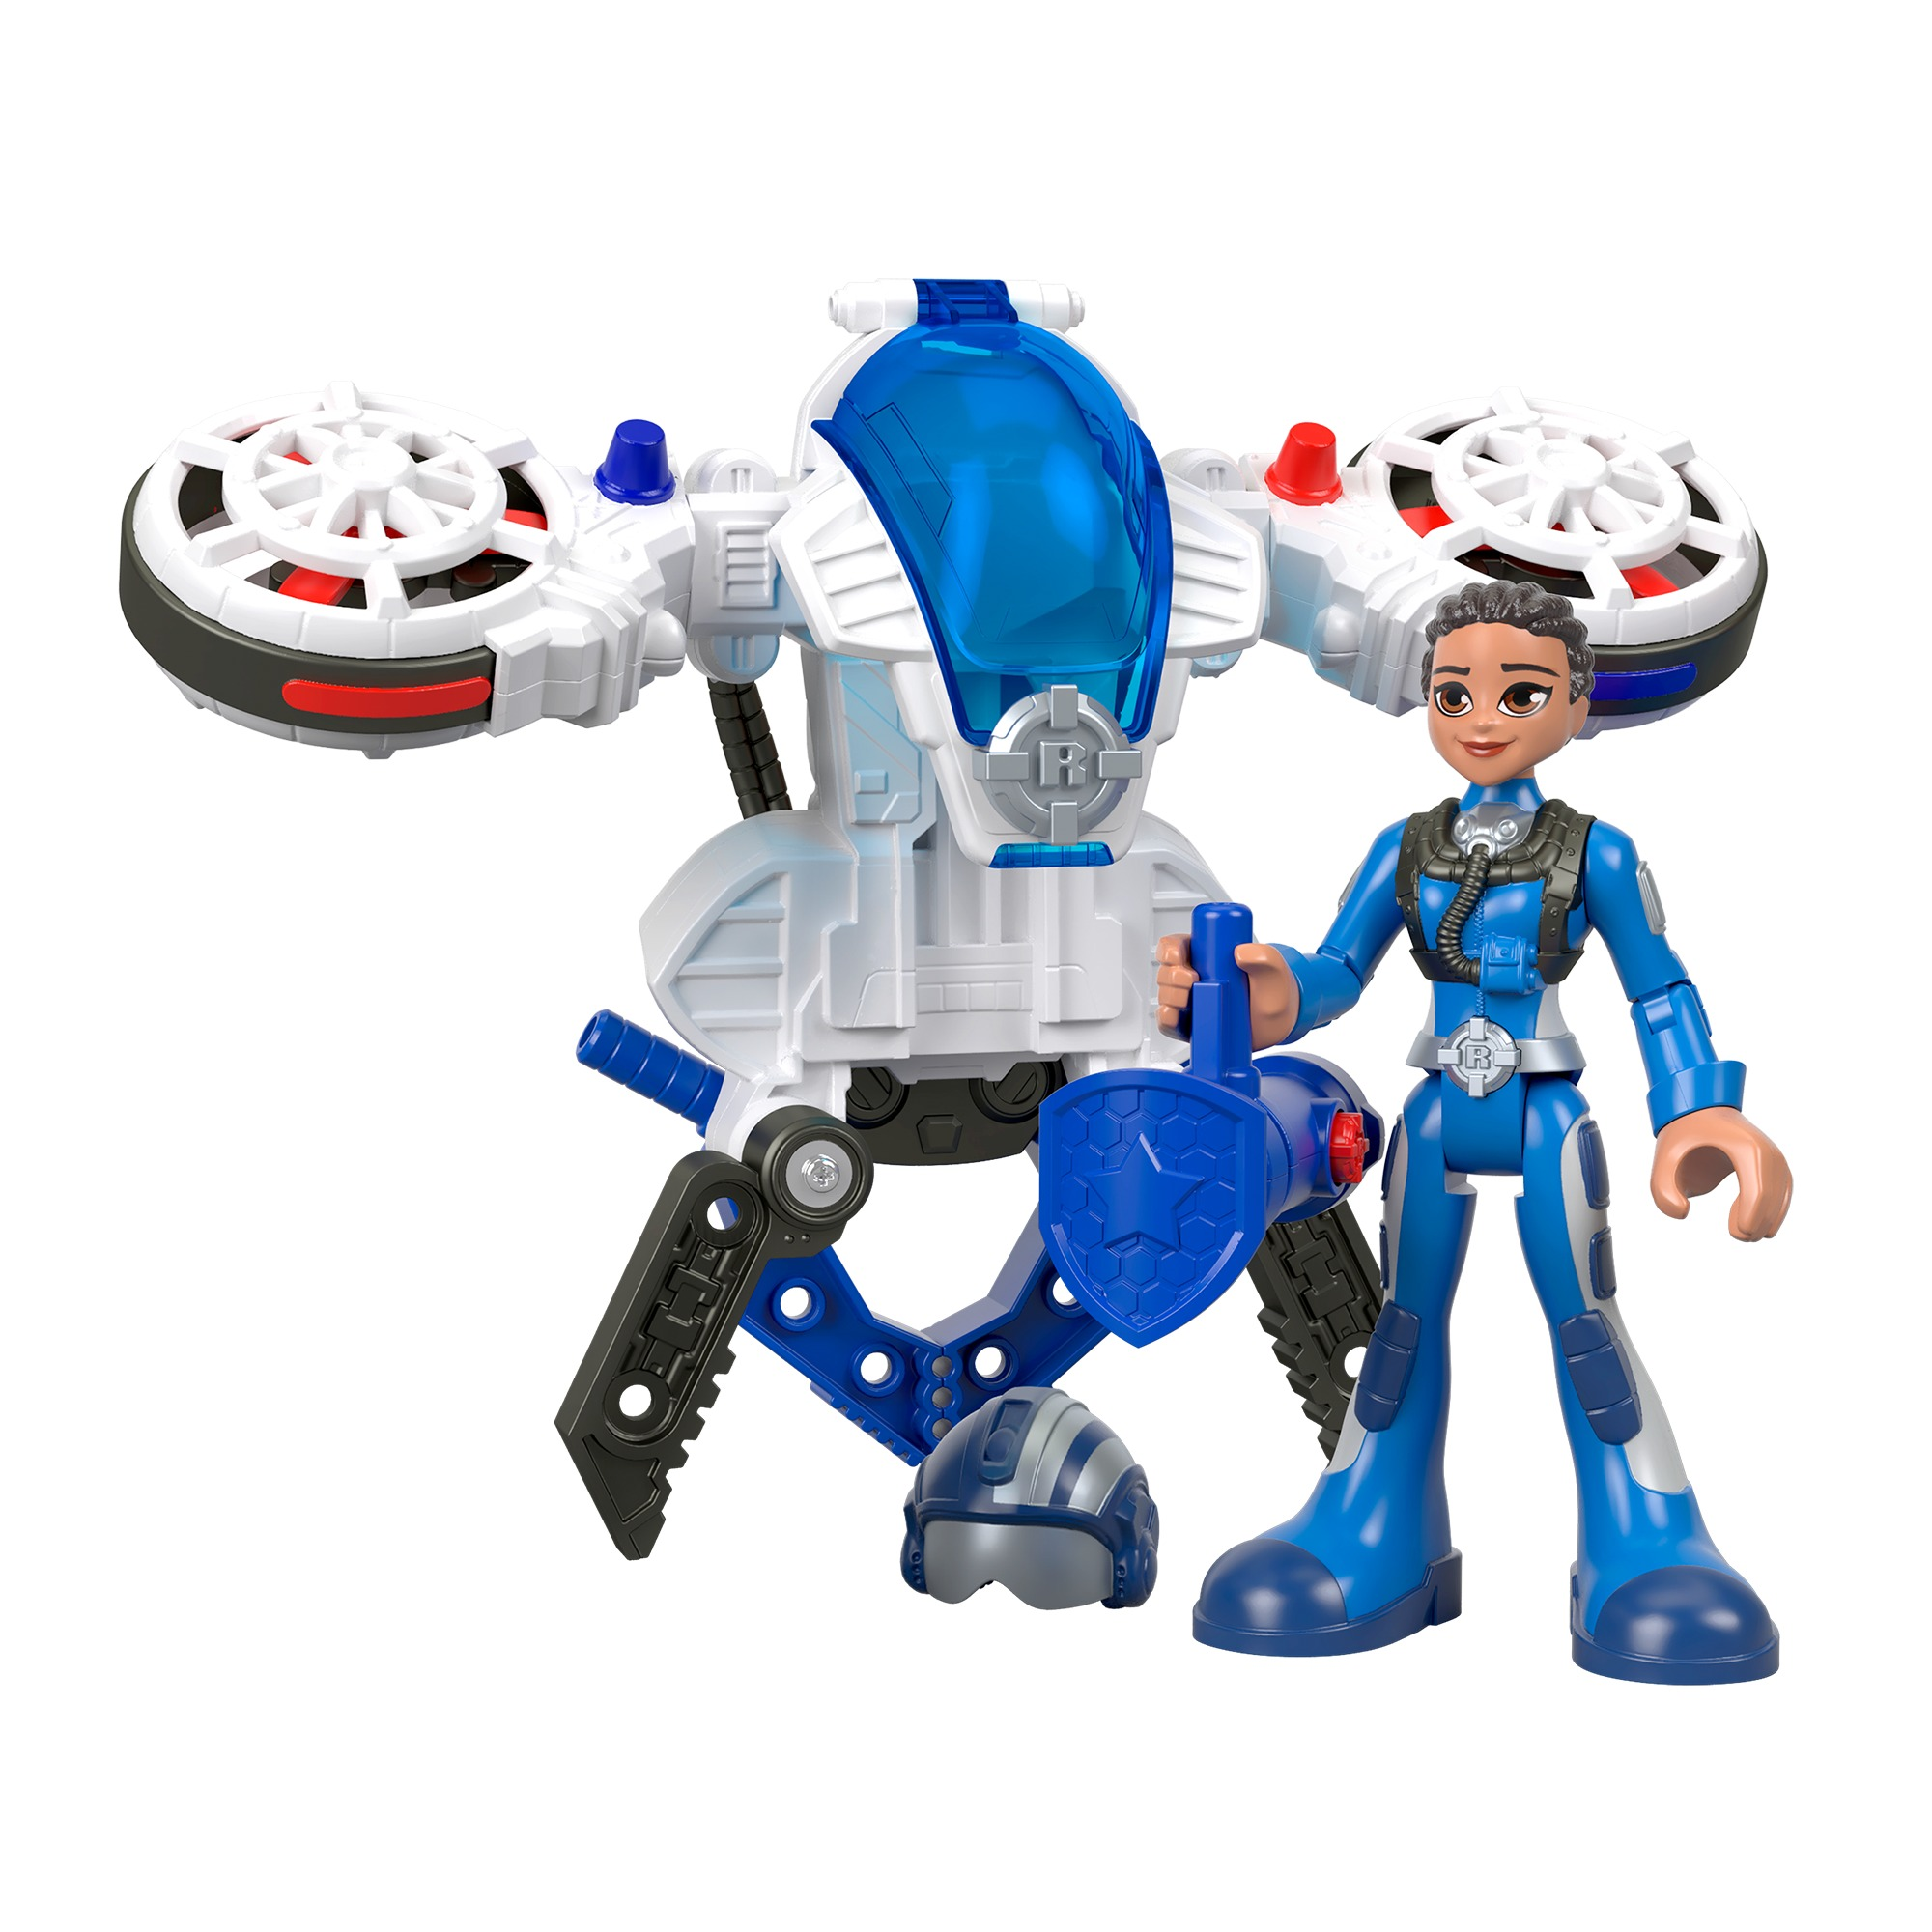 Rescue Heroes Sky Justice & Hover Pack with Spinning Propellers